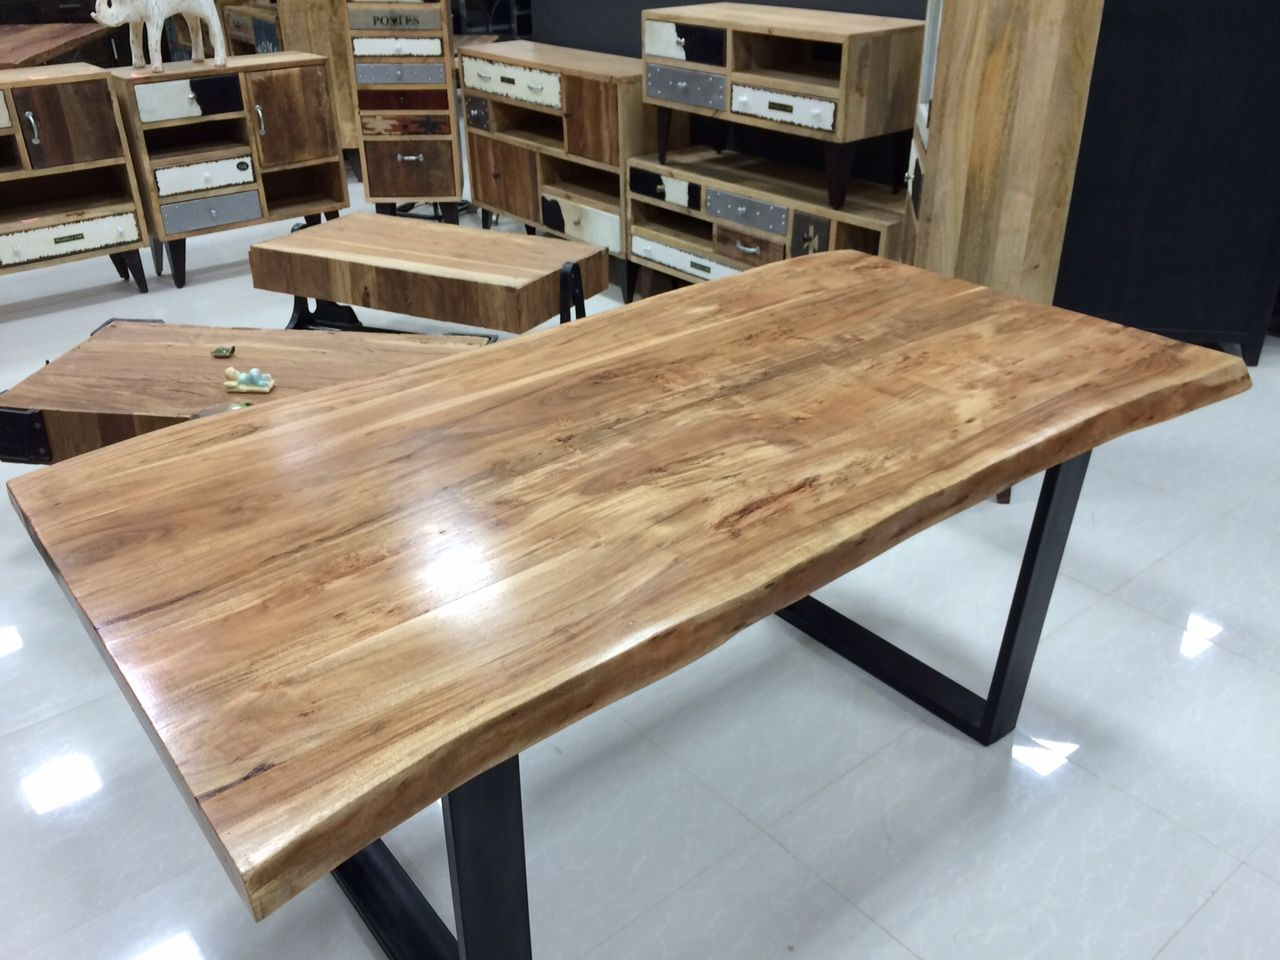 Freeform  live edge dining table made of solid acacia wood with black U  shaped steel. Freeform  live edge dining table made of solid acacia wood with